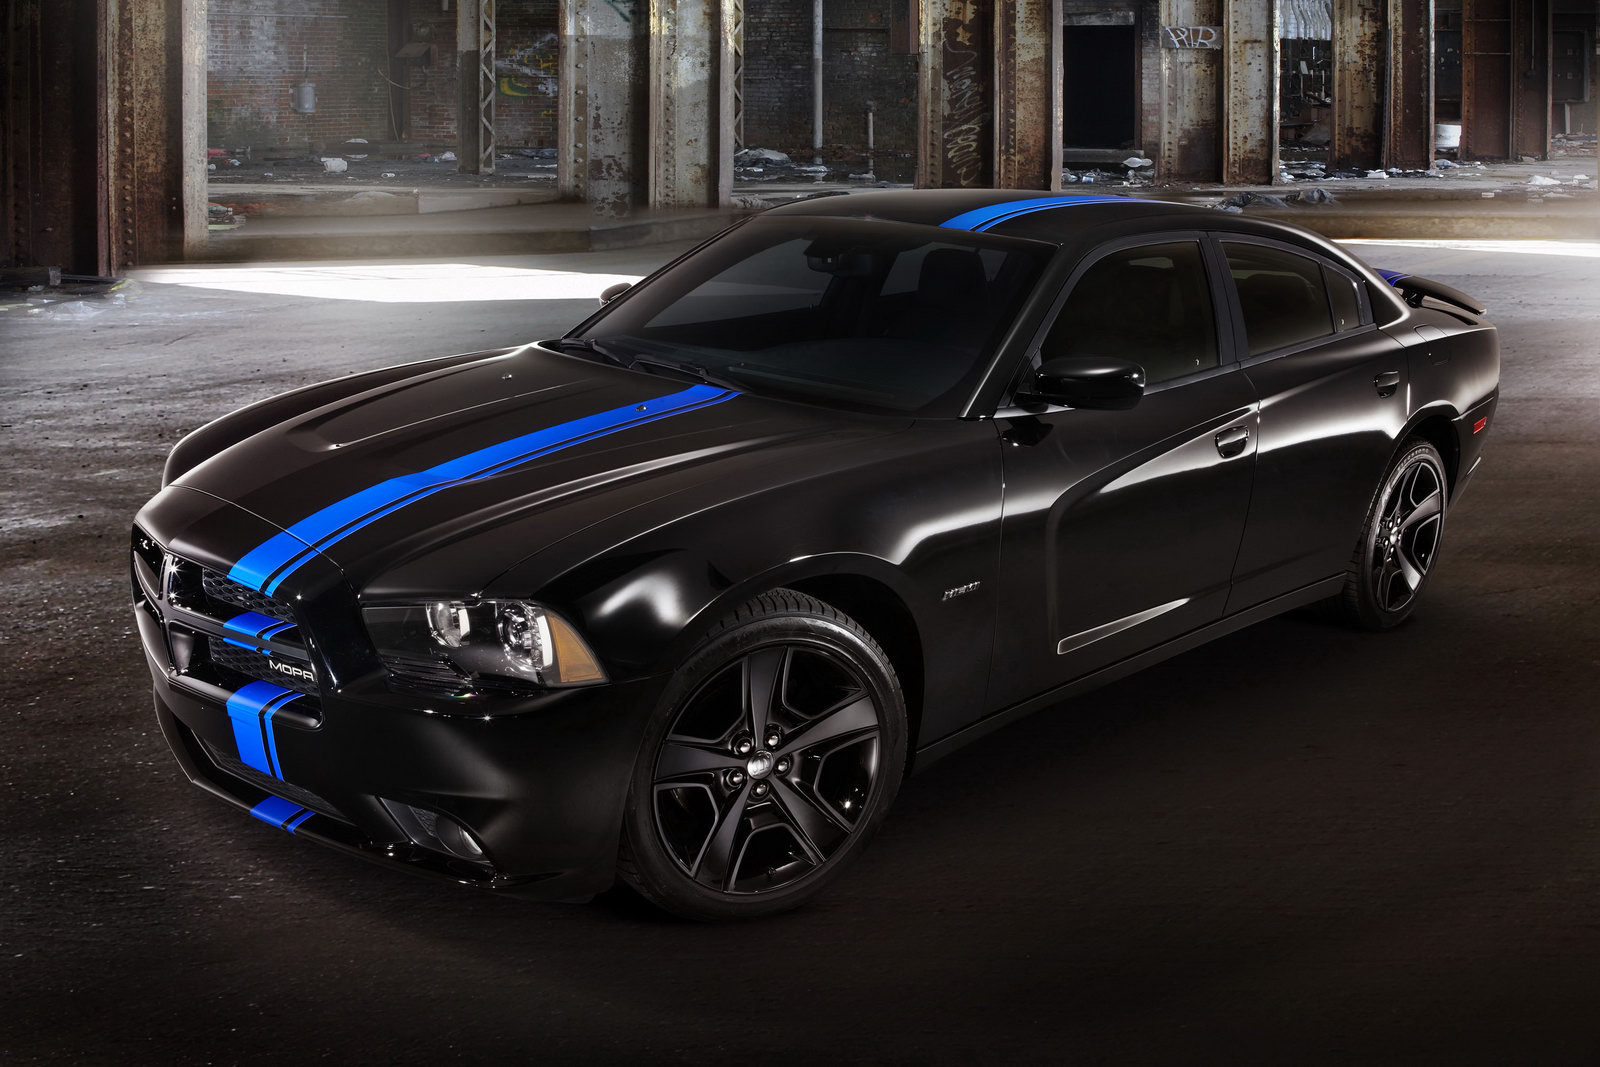 Mopar 11 Charger 2 Mopar '11 Charger Edition with Excellent Operating Systems